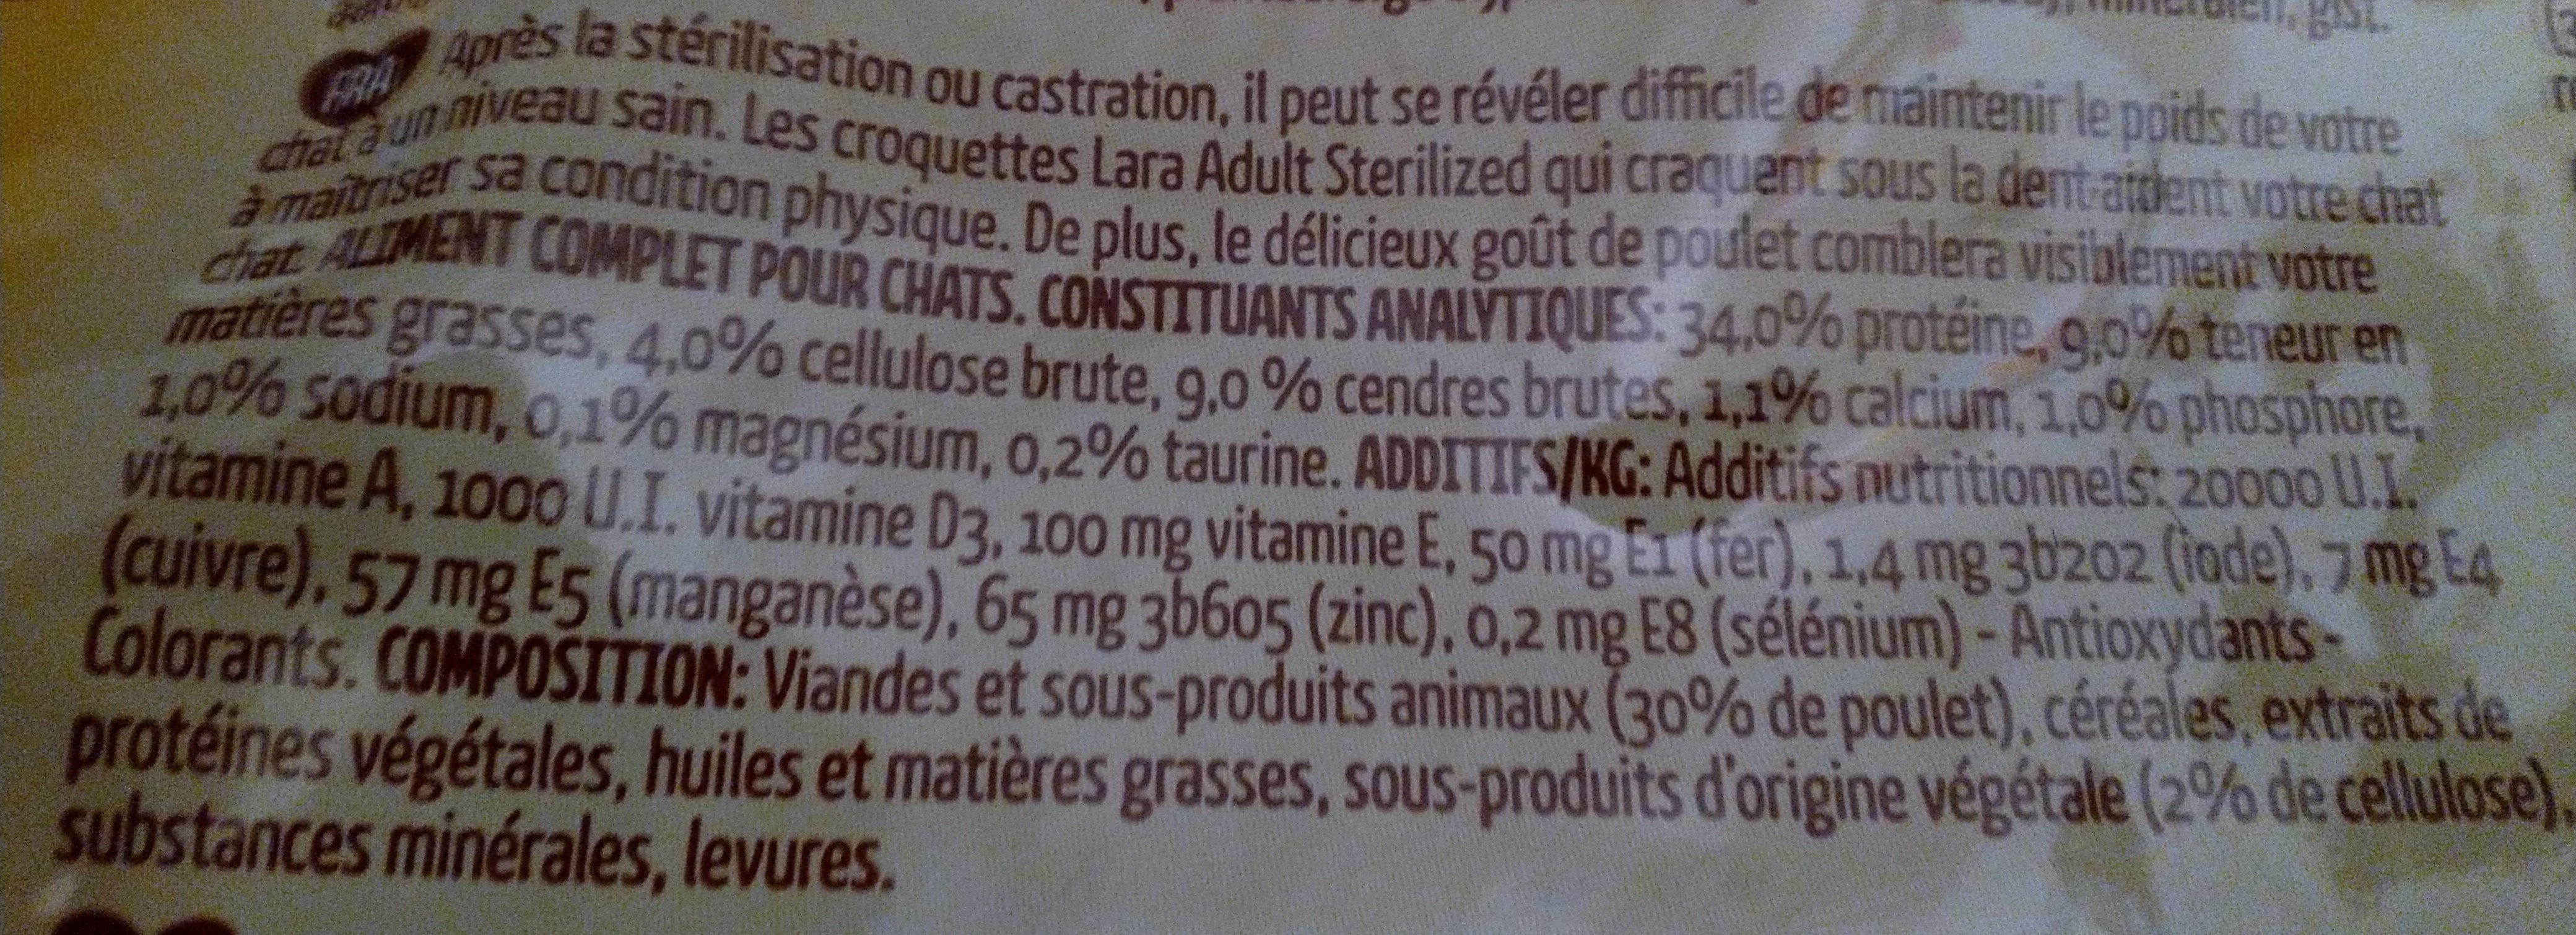 Lara adult sterilized - Ingredients